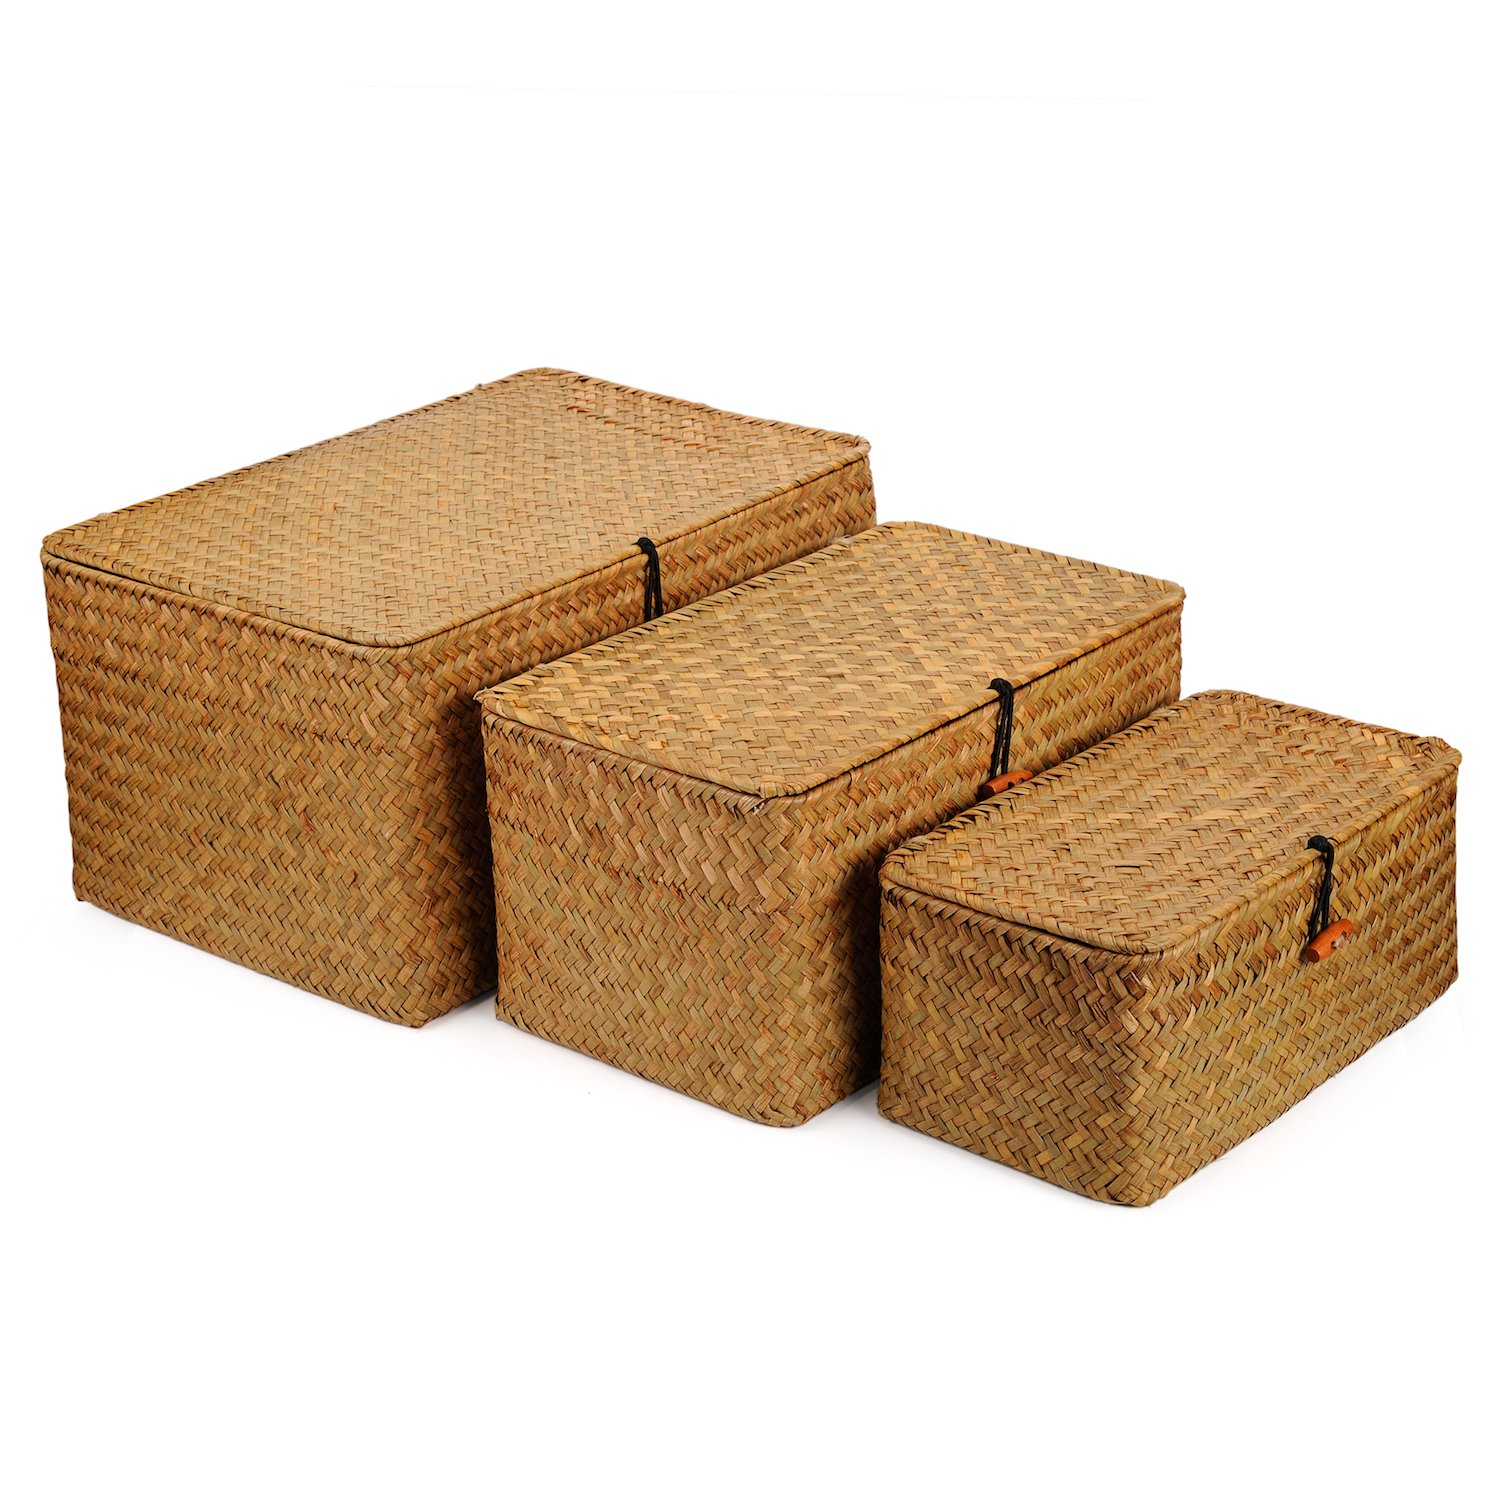 DOKOT Rectangular Handwoven Seagrass Storage Basket with Lid and Home Organizer Bins, Set of 3 (Set of 3 (S+M+L)(Super Large), Yellow)